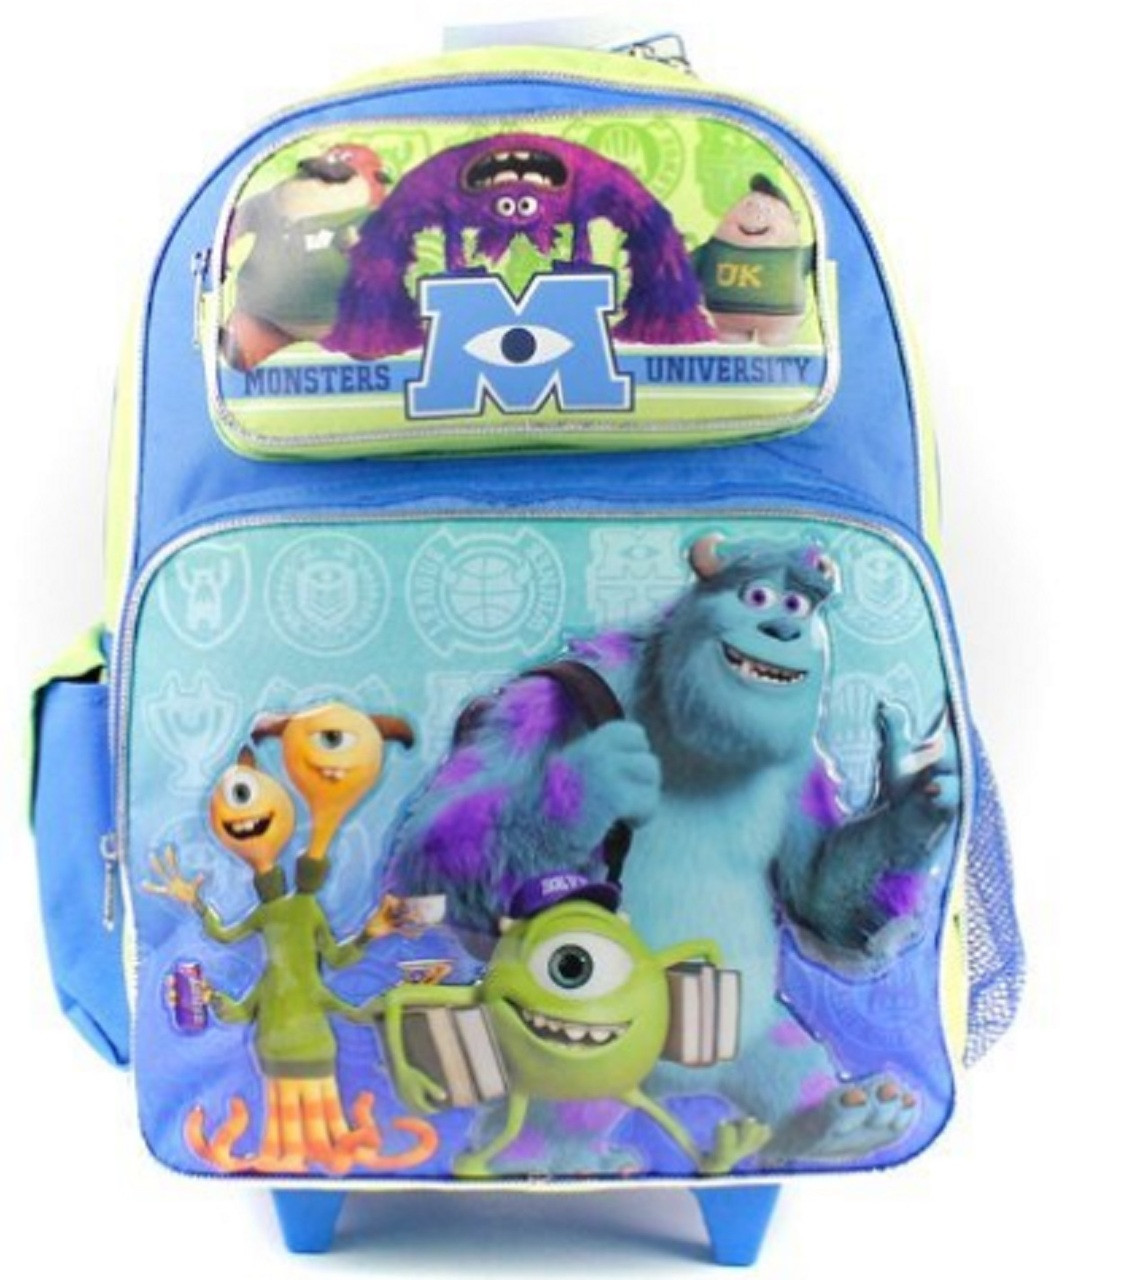 aeaad9c20e7 Monsters University Large 16 Inch Rolling Backpack - Mike Sully 3D